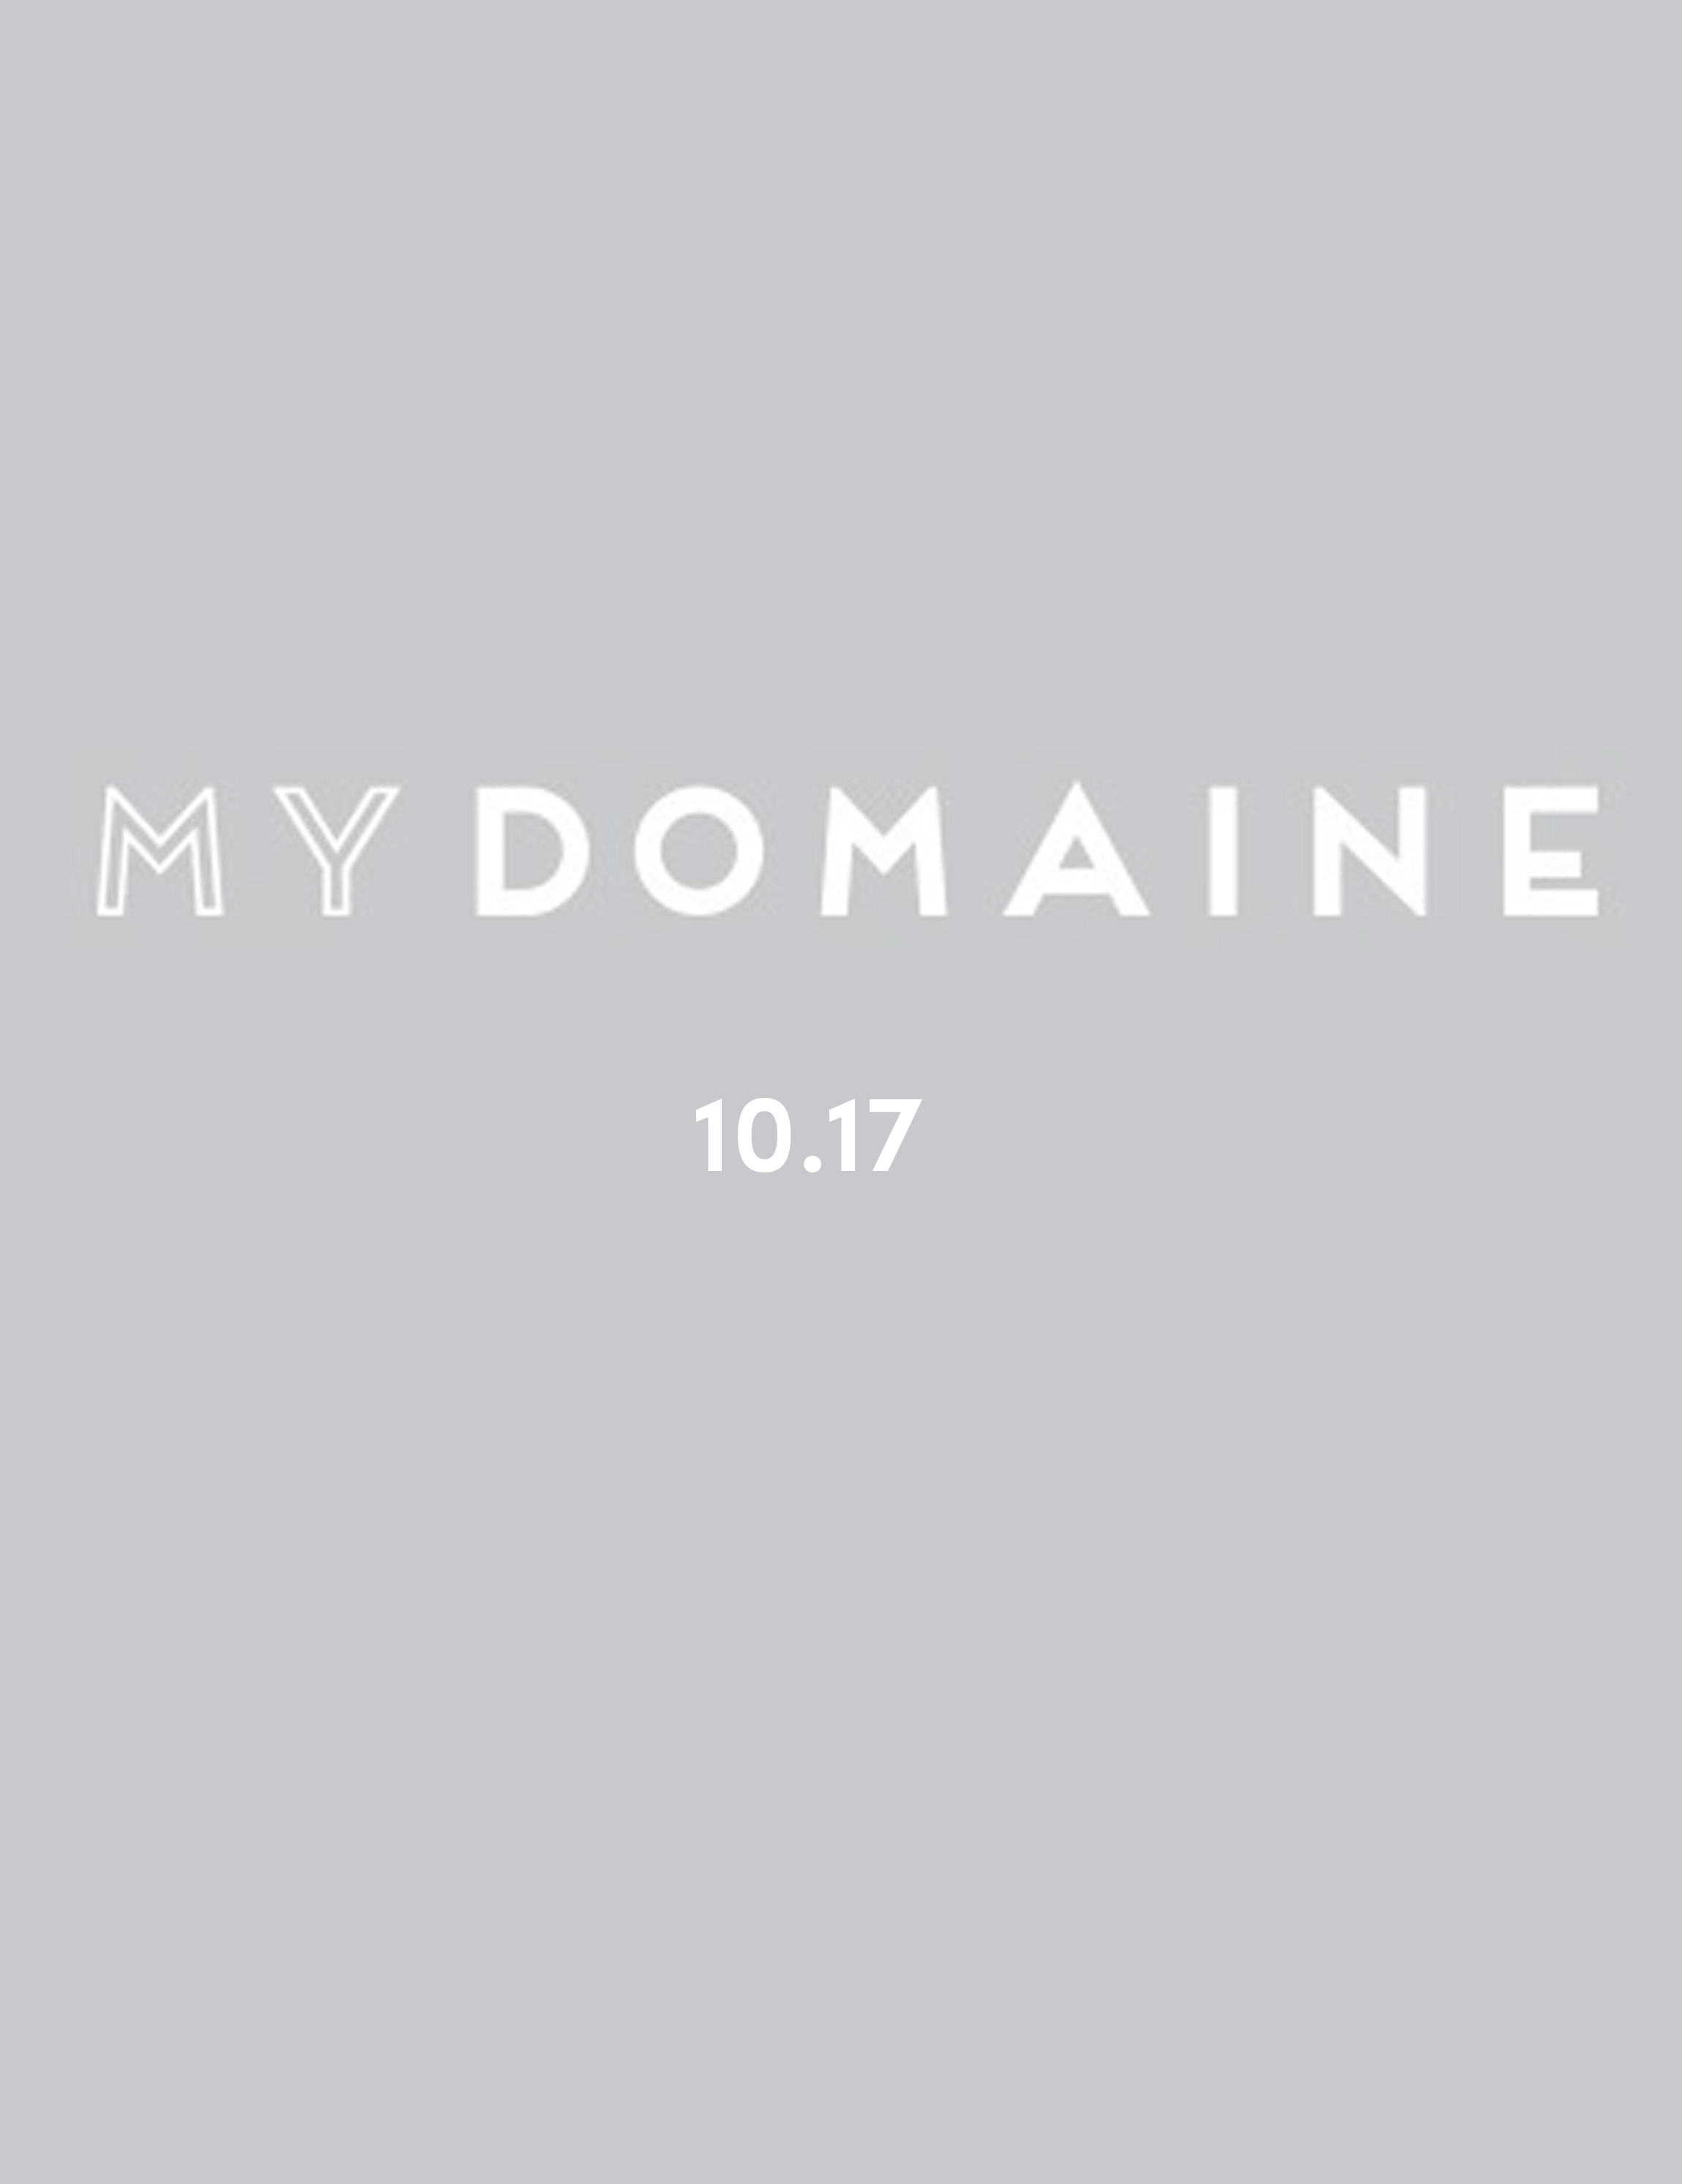 MY DOMAINE-10.17.png